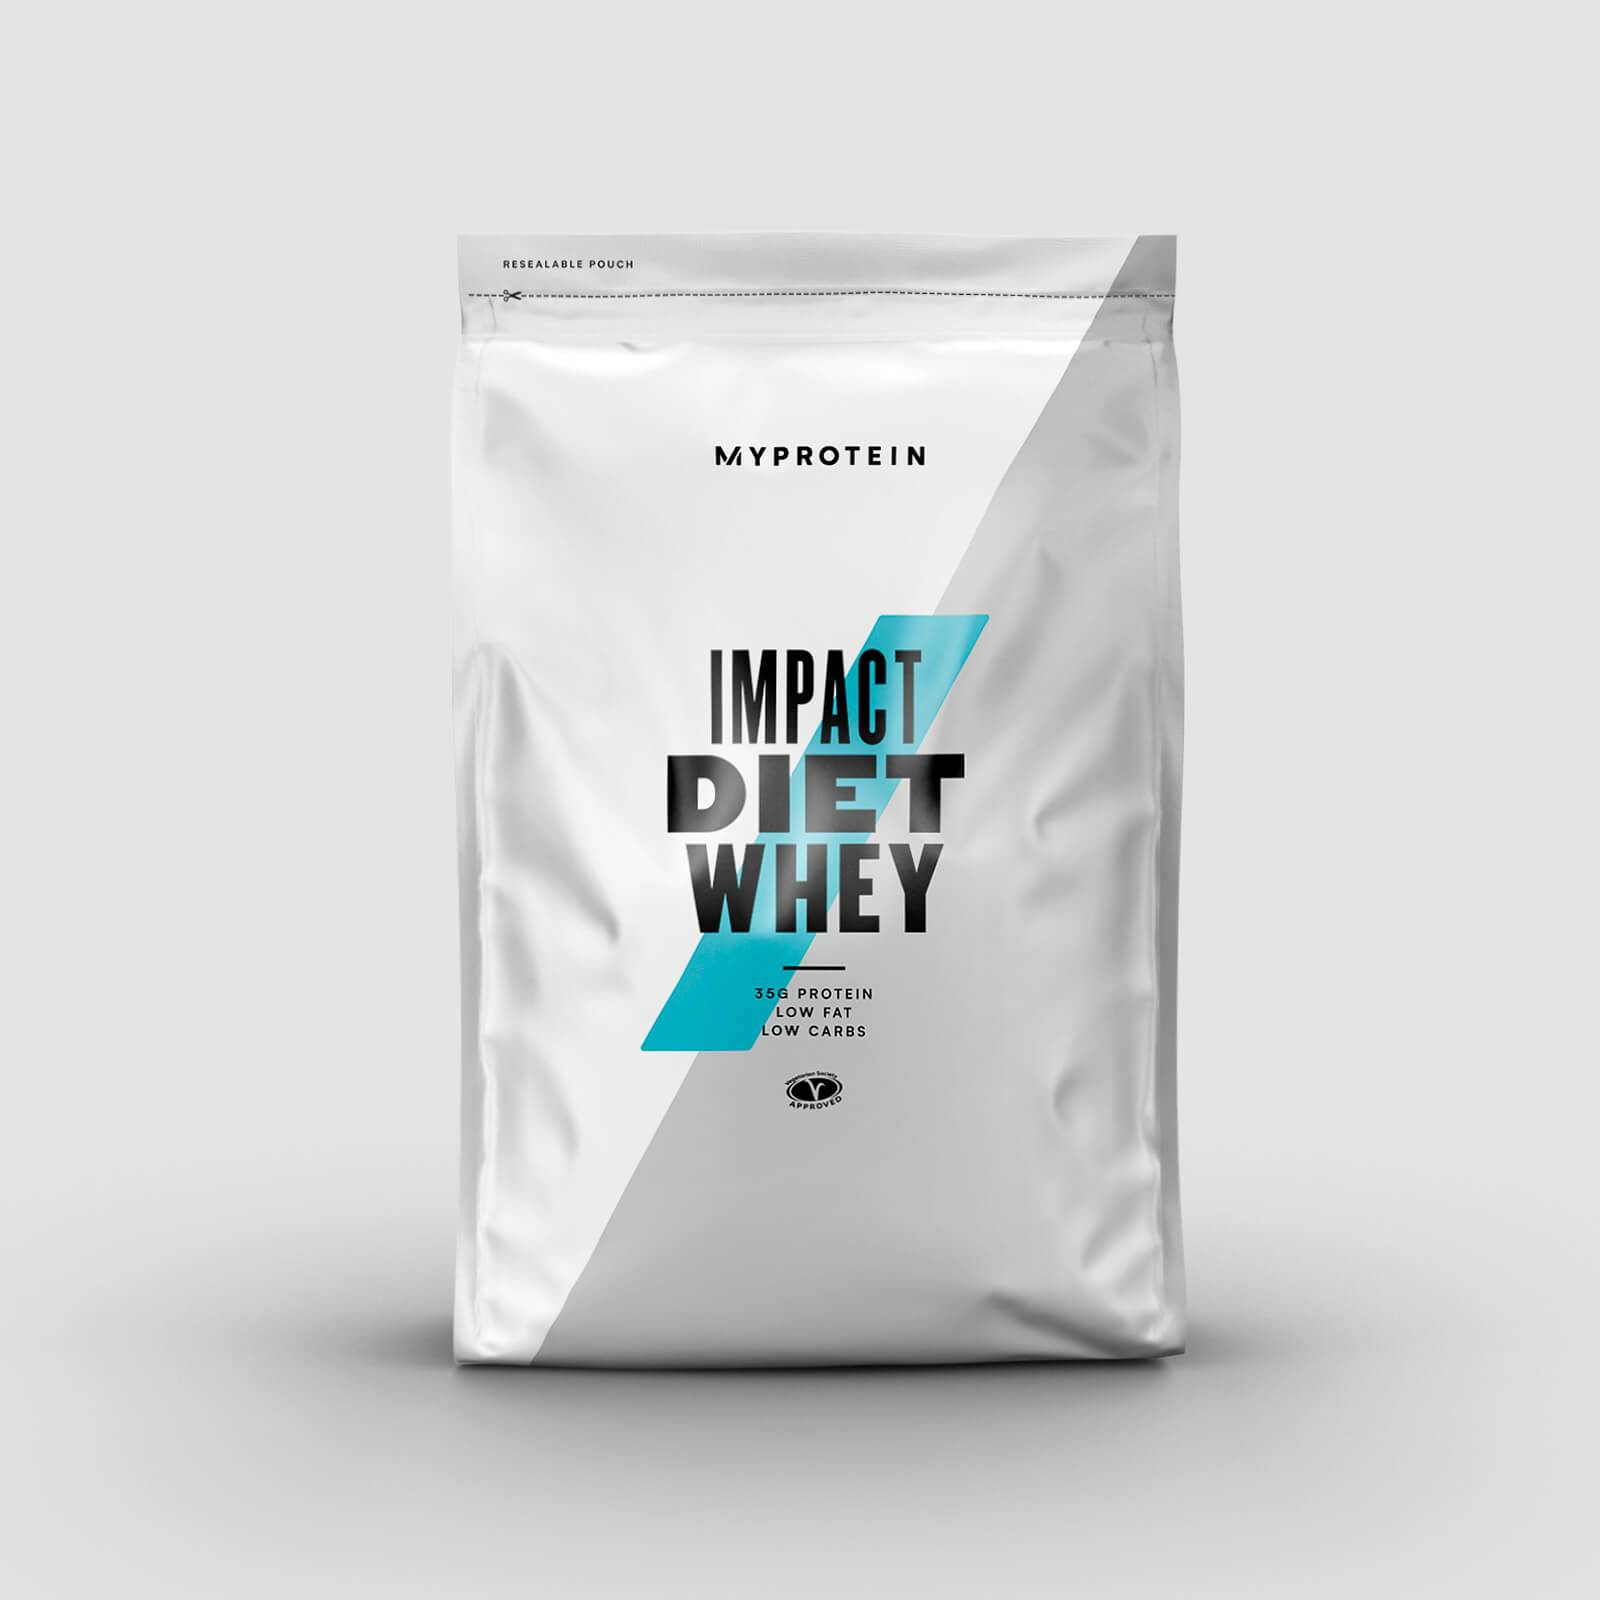 Myprotein Impact Diet Whey - 5kg - Cookies & Cream